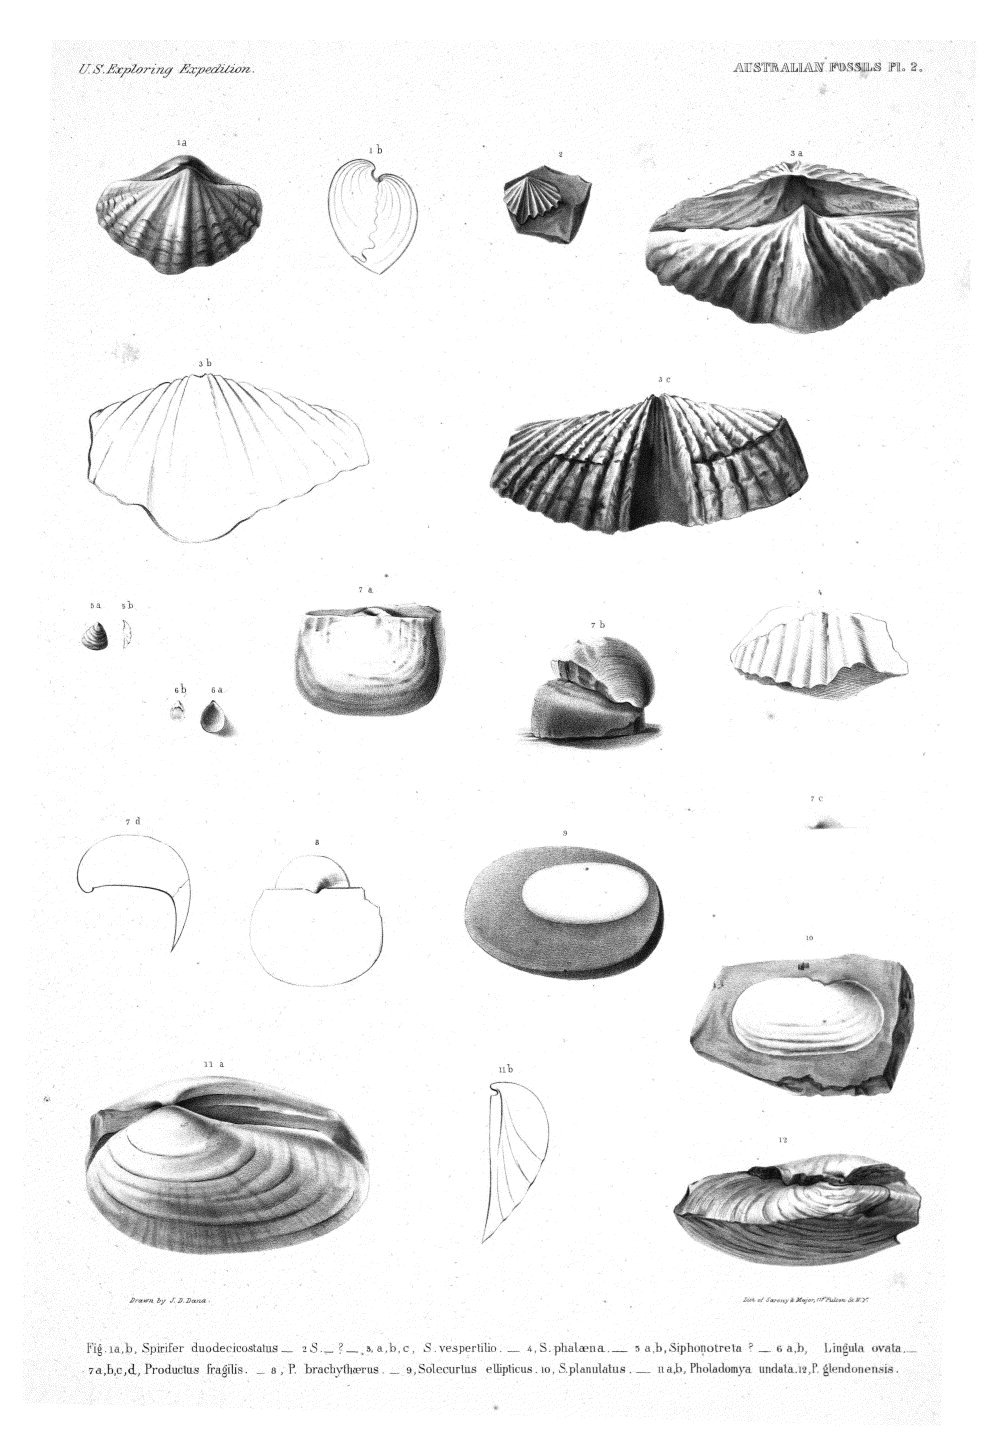 Australian Fossils, Plate 2,  Image number:Sil19-15-008